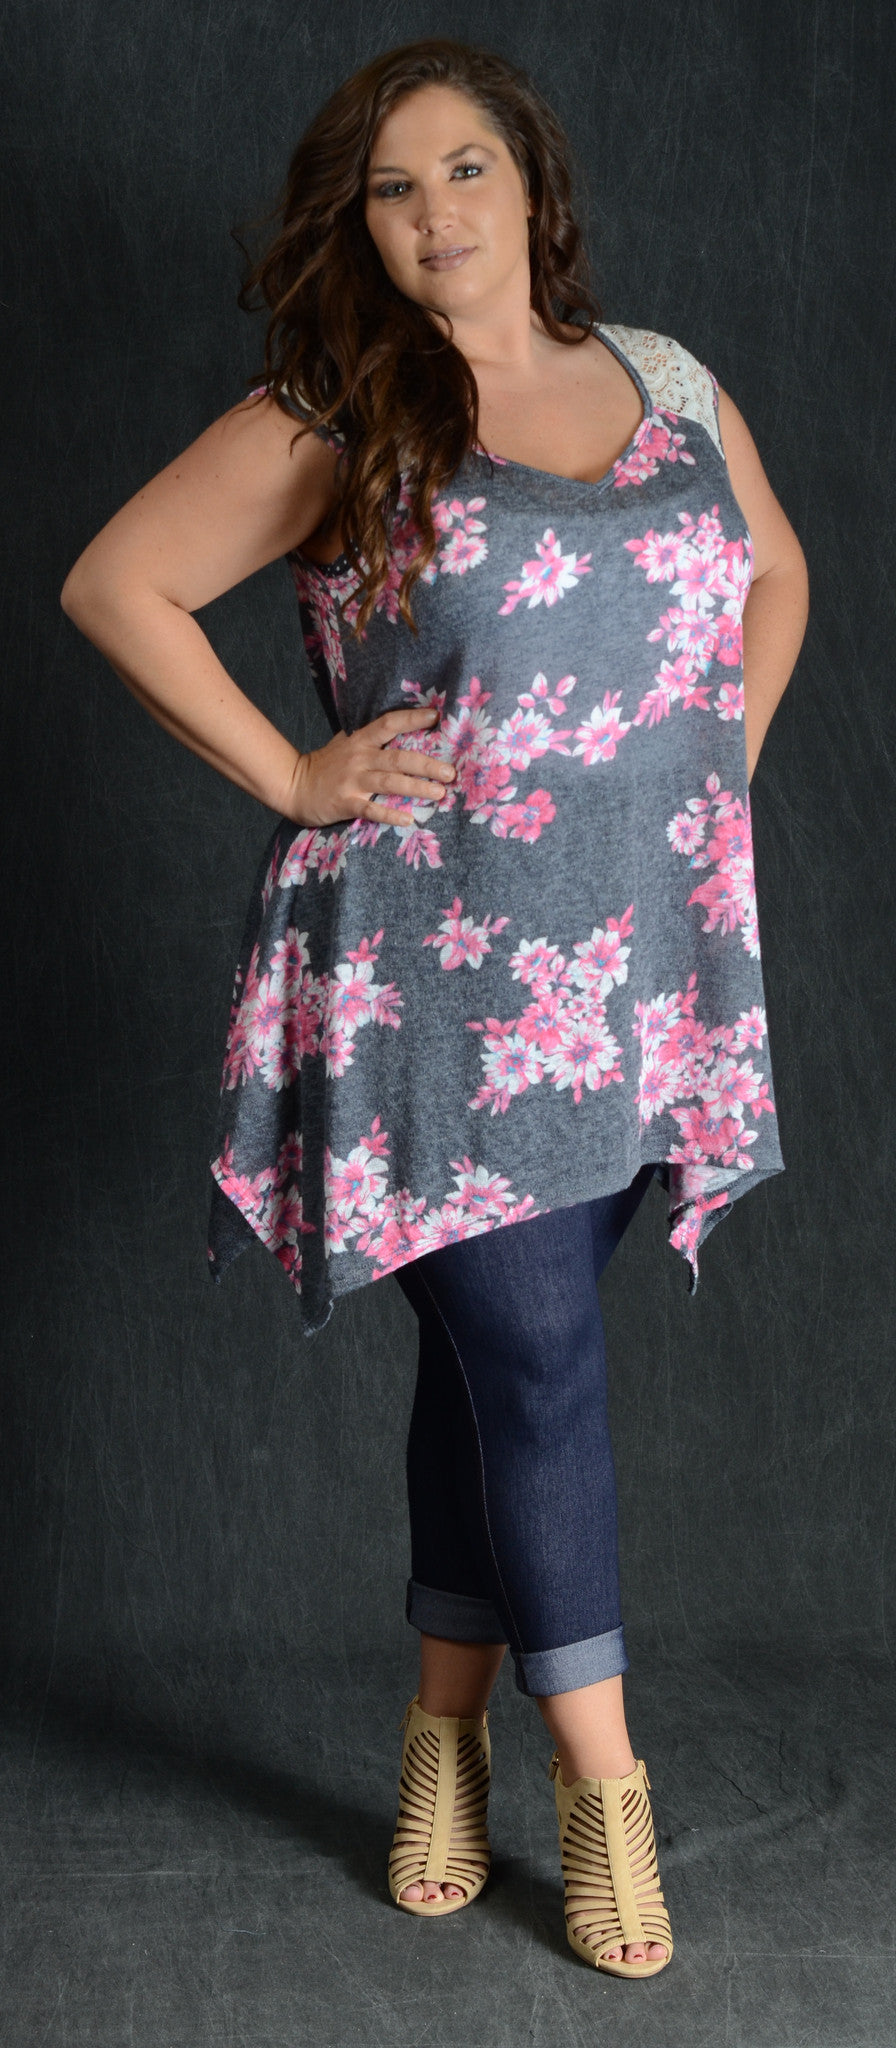 Pink & Grey Floral Top - www.mycurvystore.com - Curvy Boutique - Plus Size